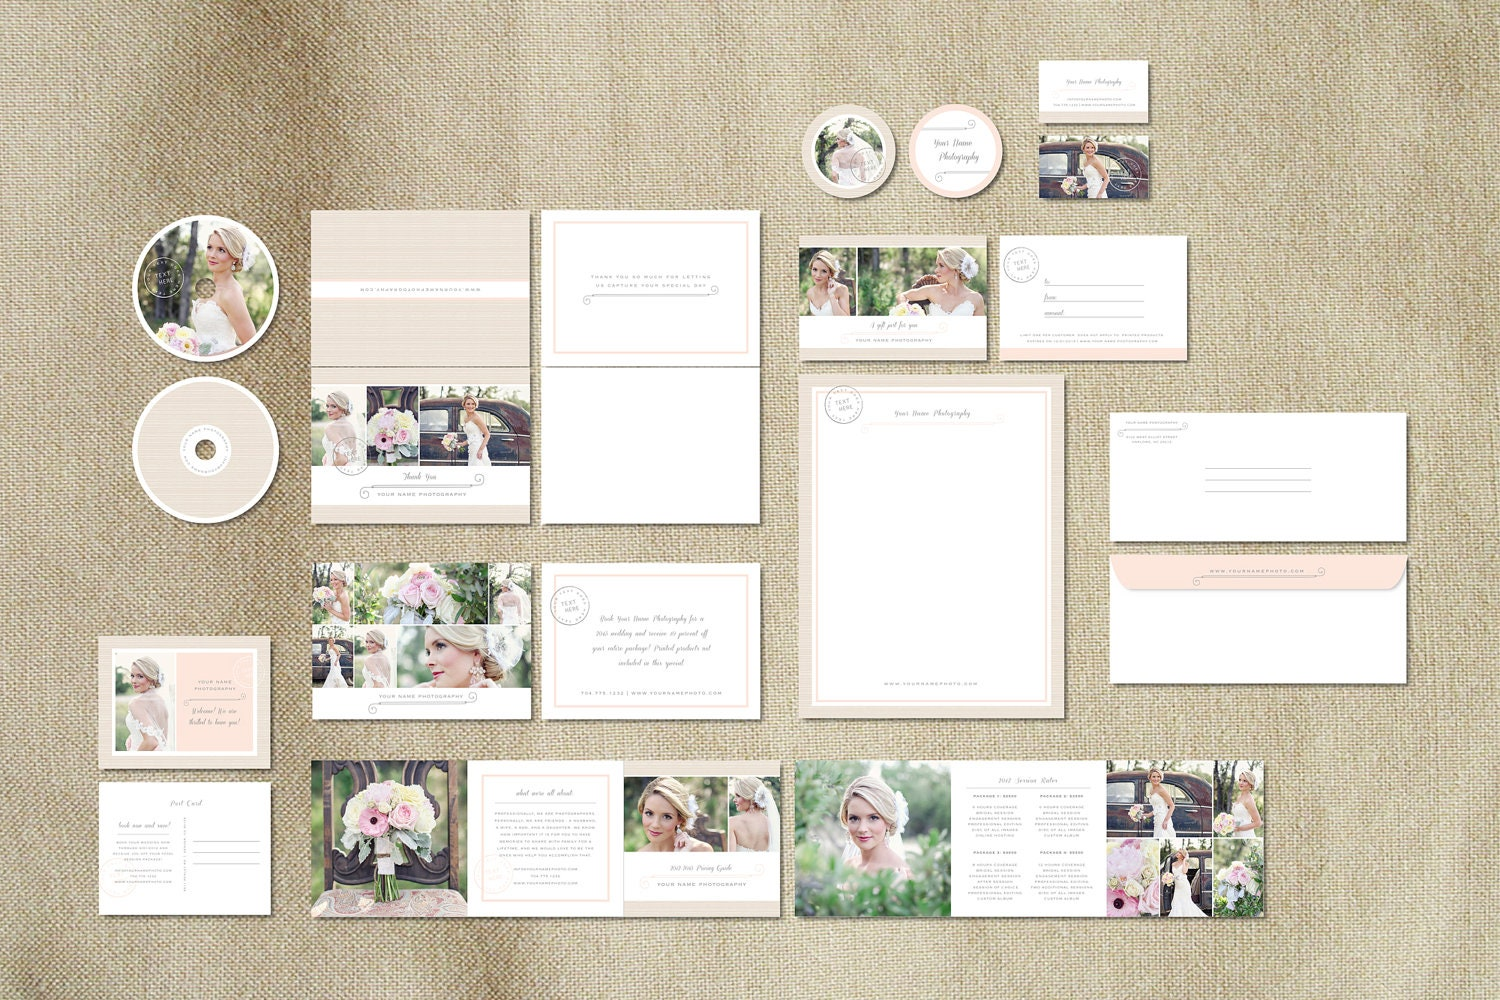 marketing templates for wedding by designbybittersweet on etsy